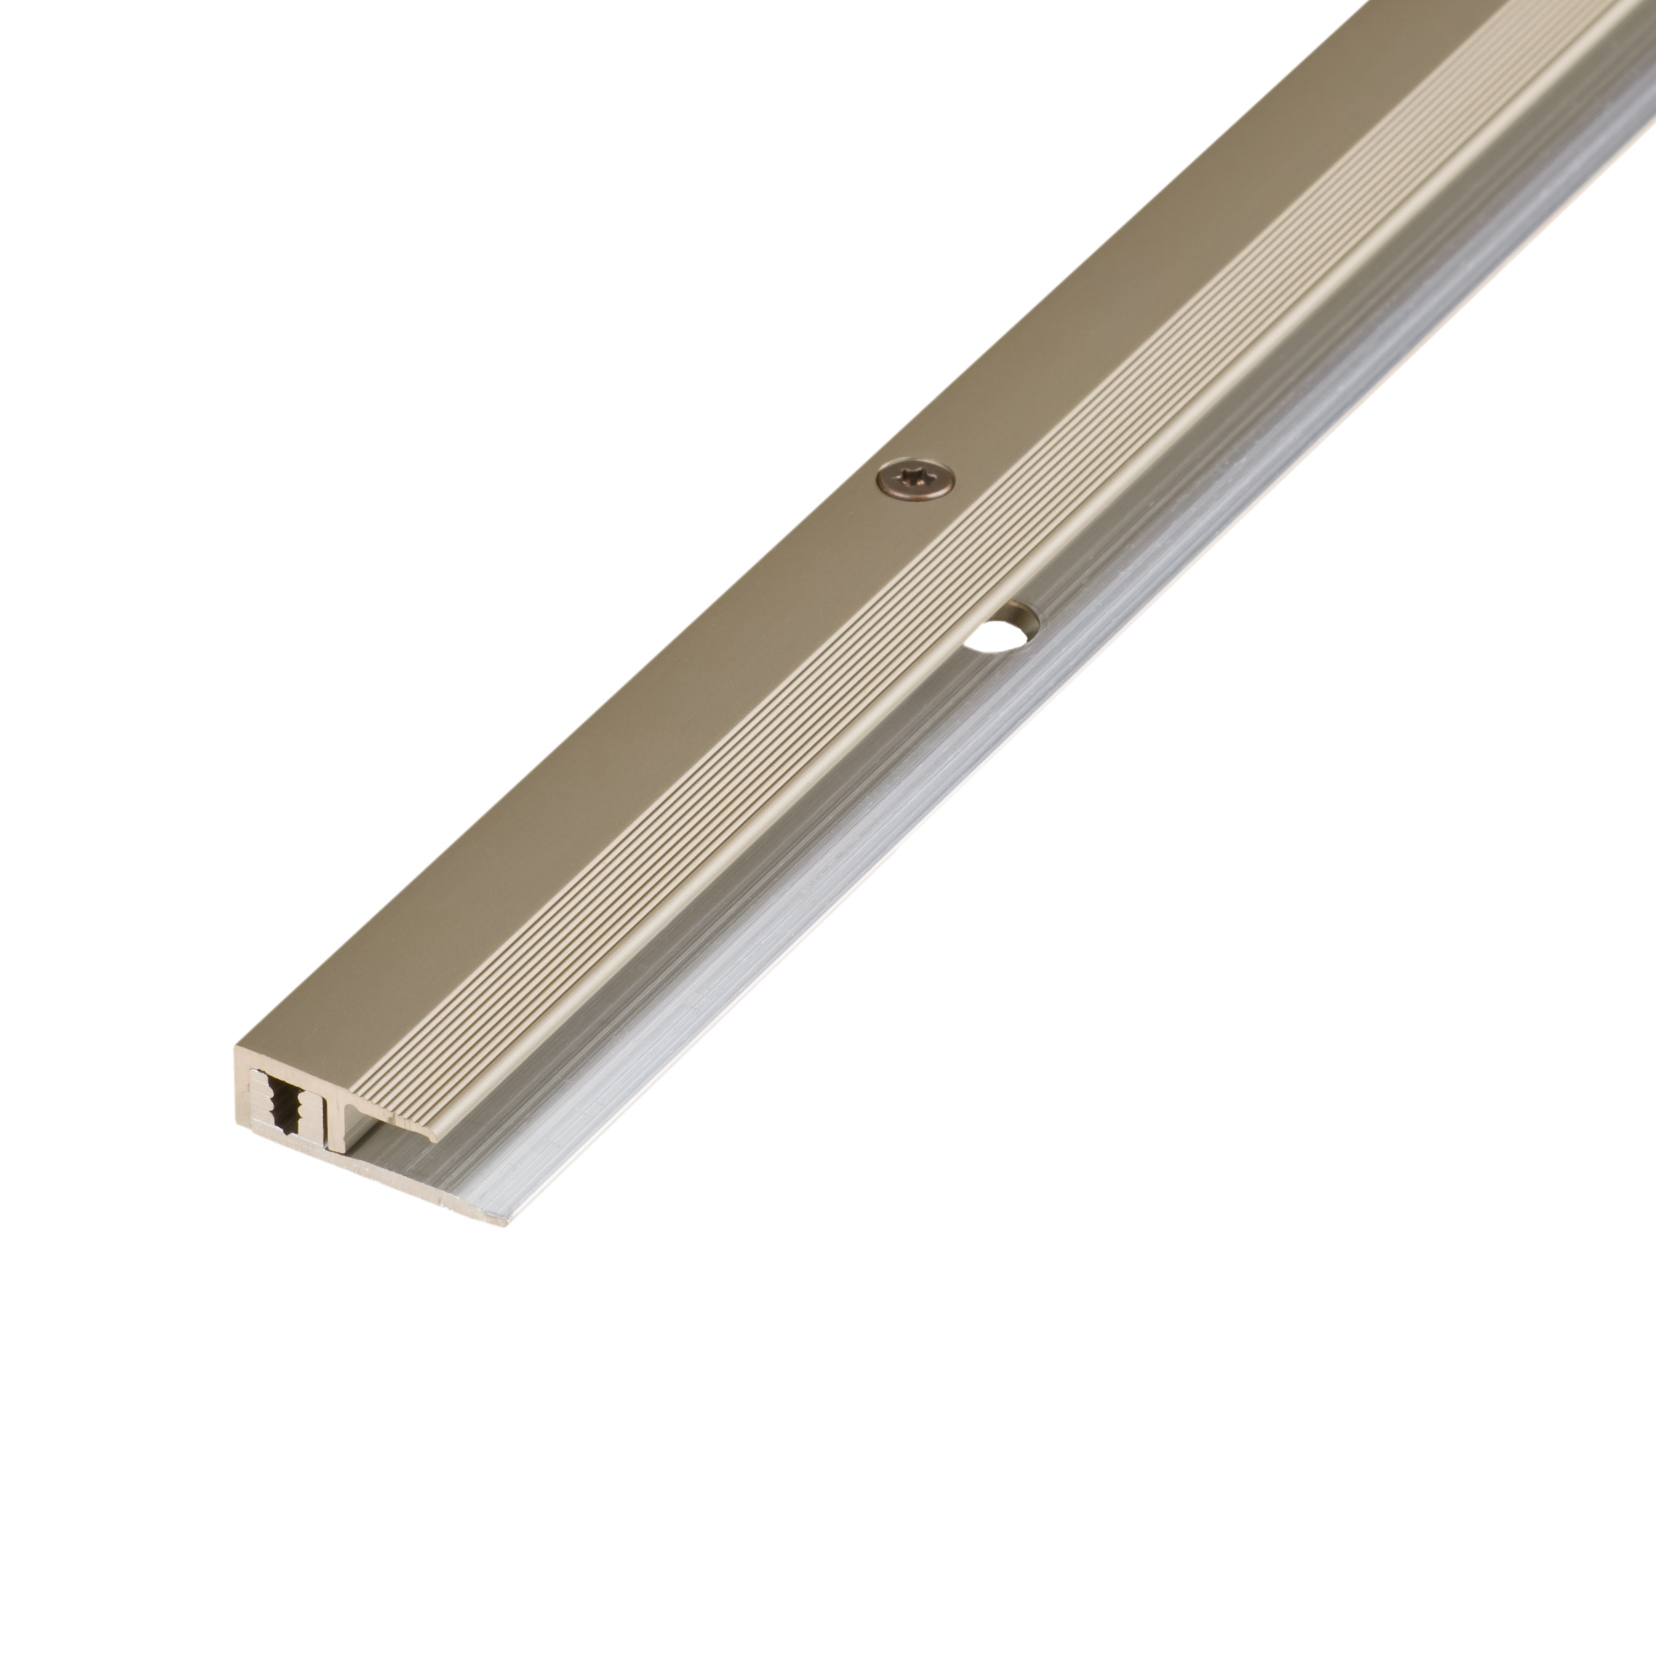 End profile alu stainless steel 4-9mm